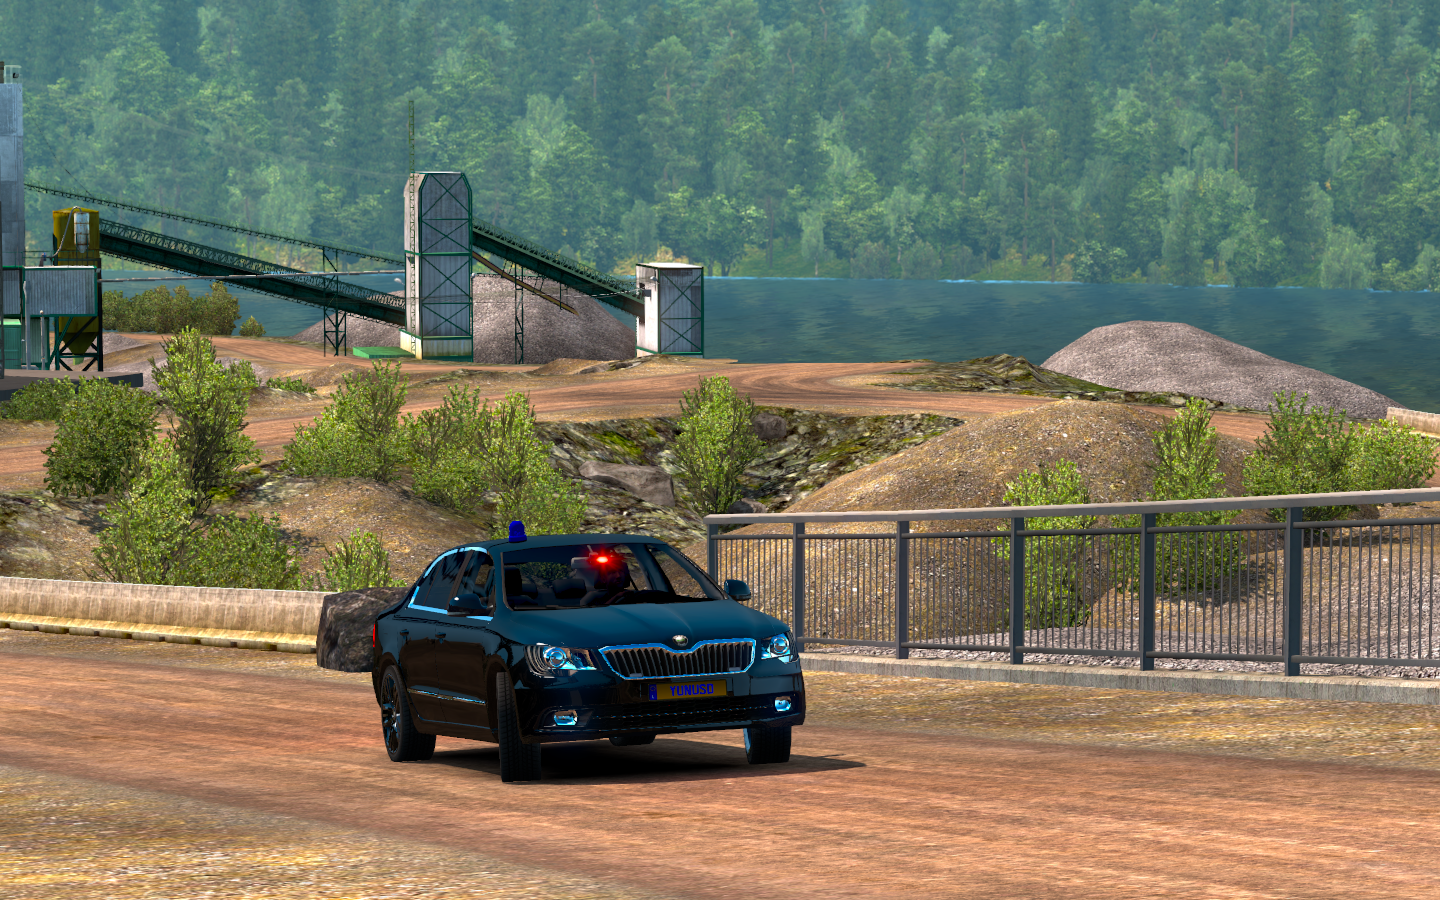 ets2_20190430_001251_00.png